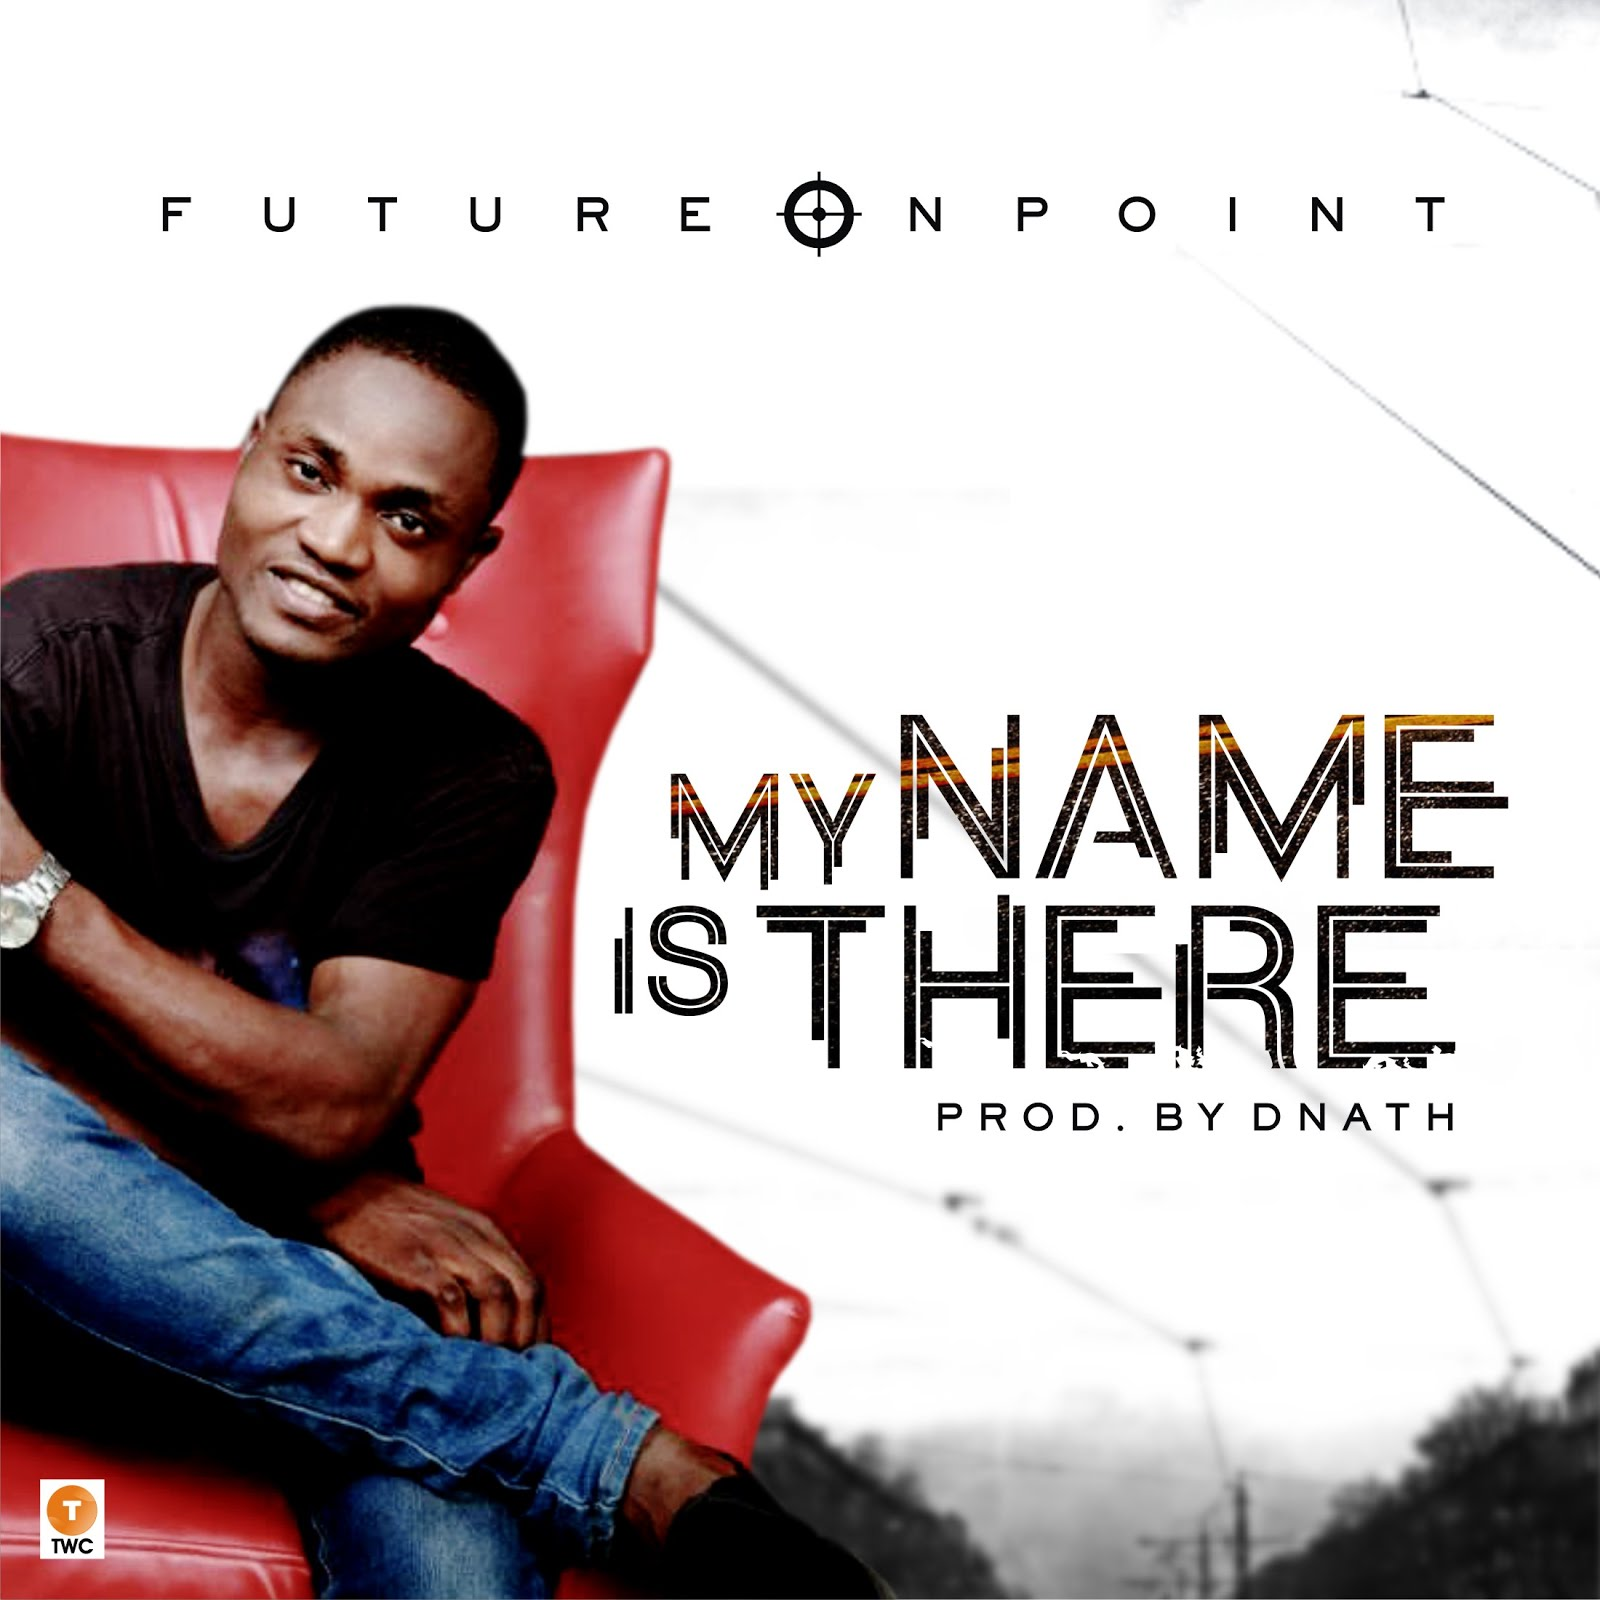 future onpoint. Gospel redefined